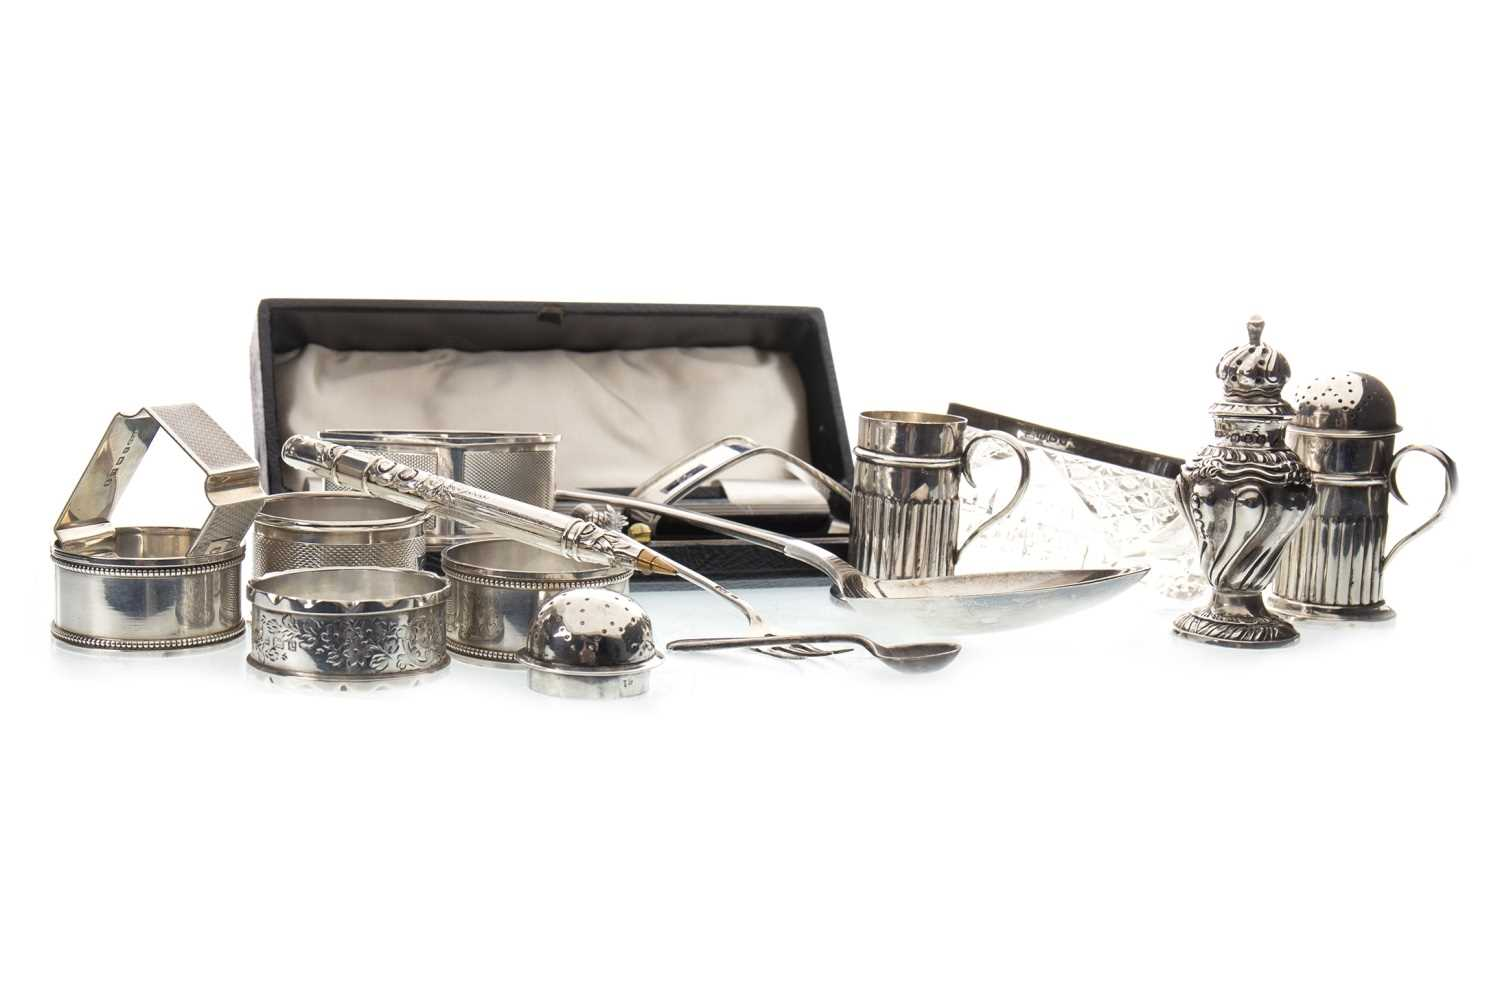 Lot 826-A PAIR OF SILVER SALT AND PEPPER SHAKERS AND OTHER SMALL SILVER ITEMS